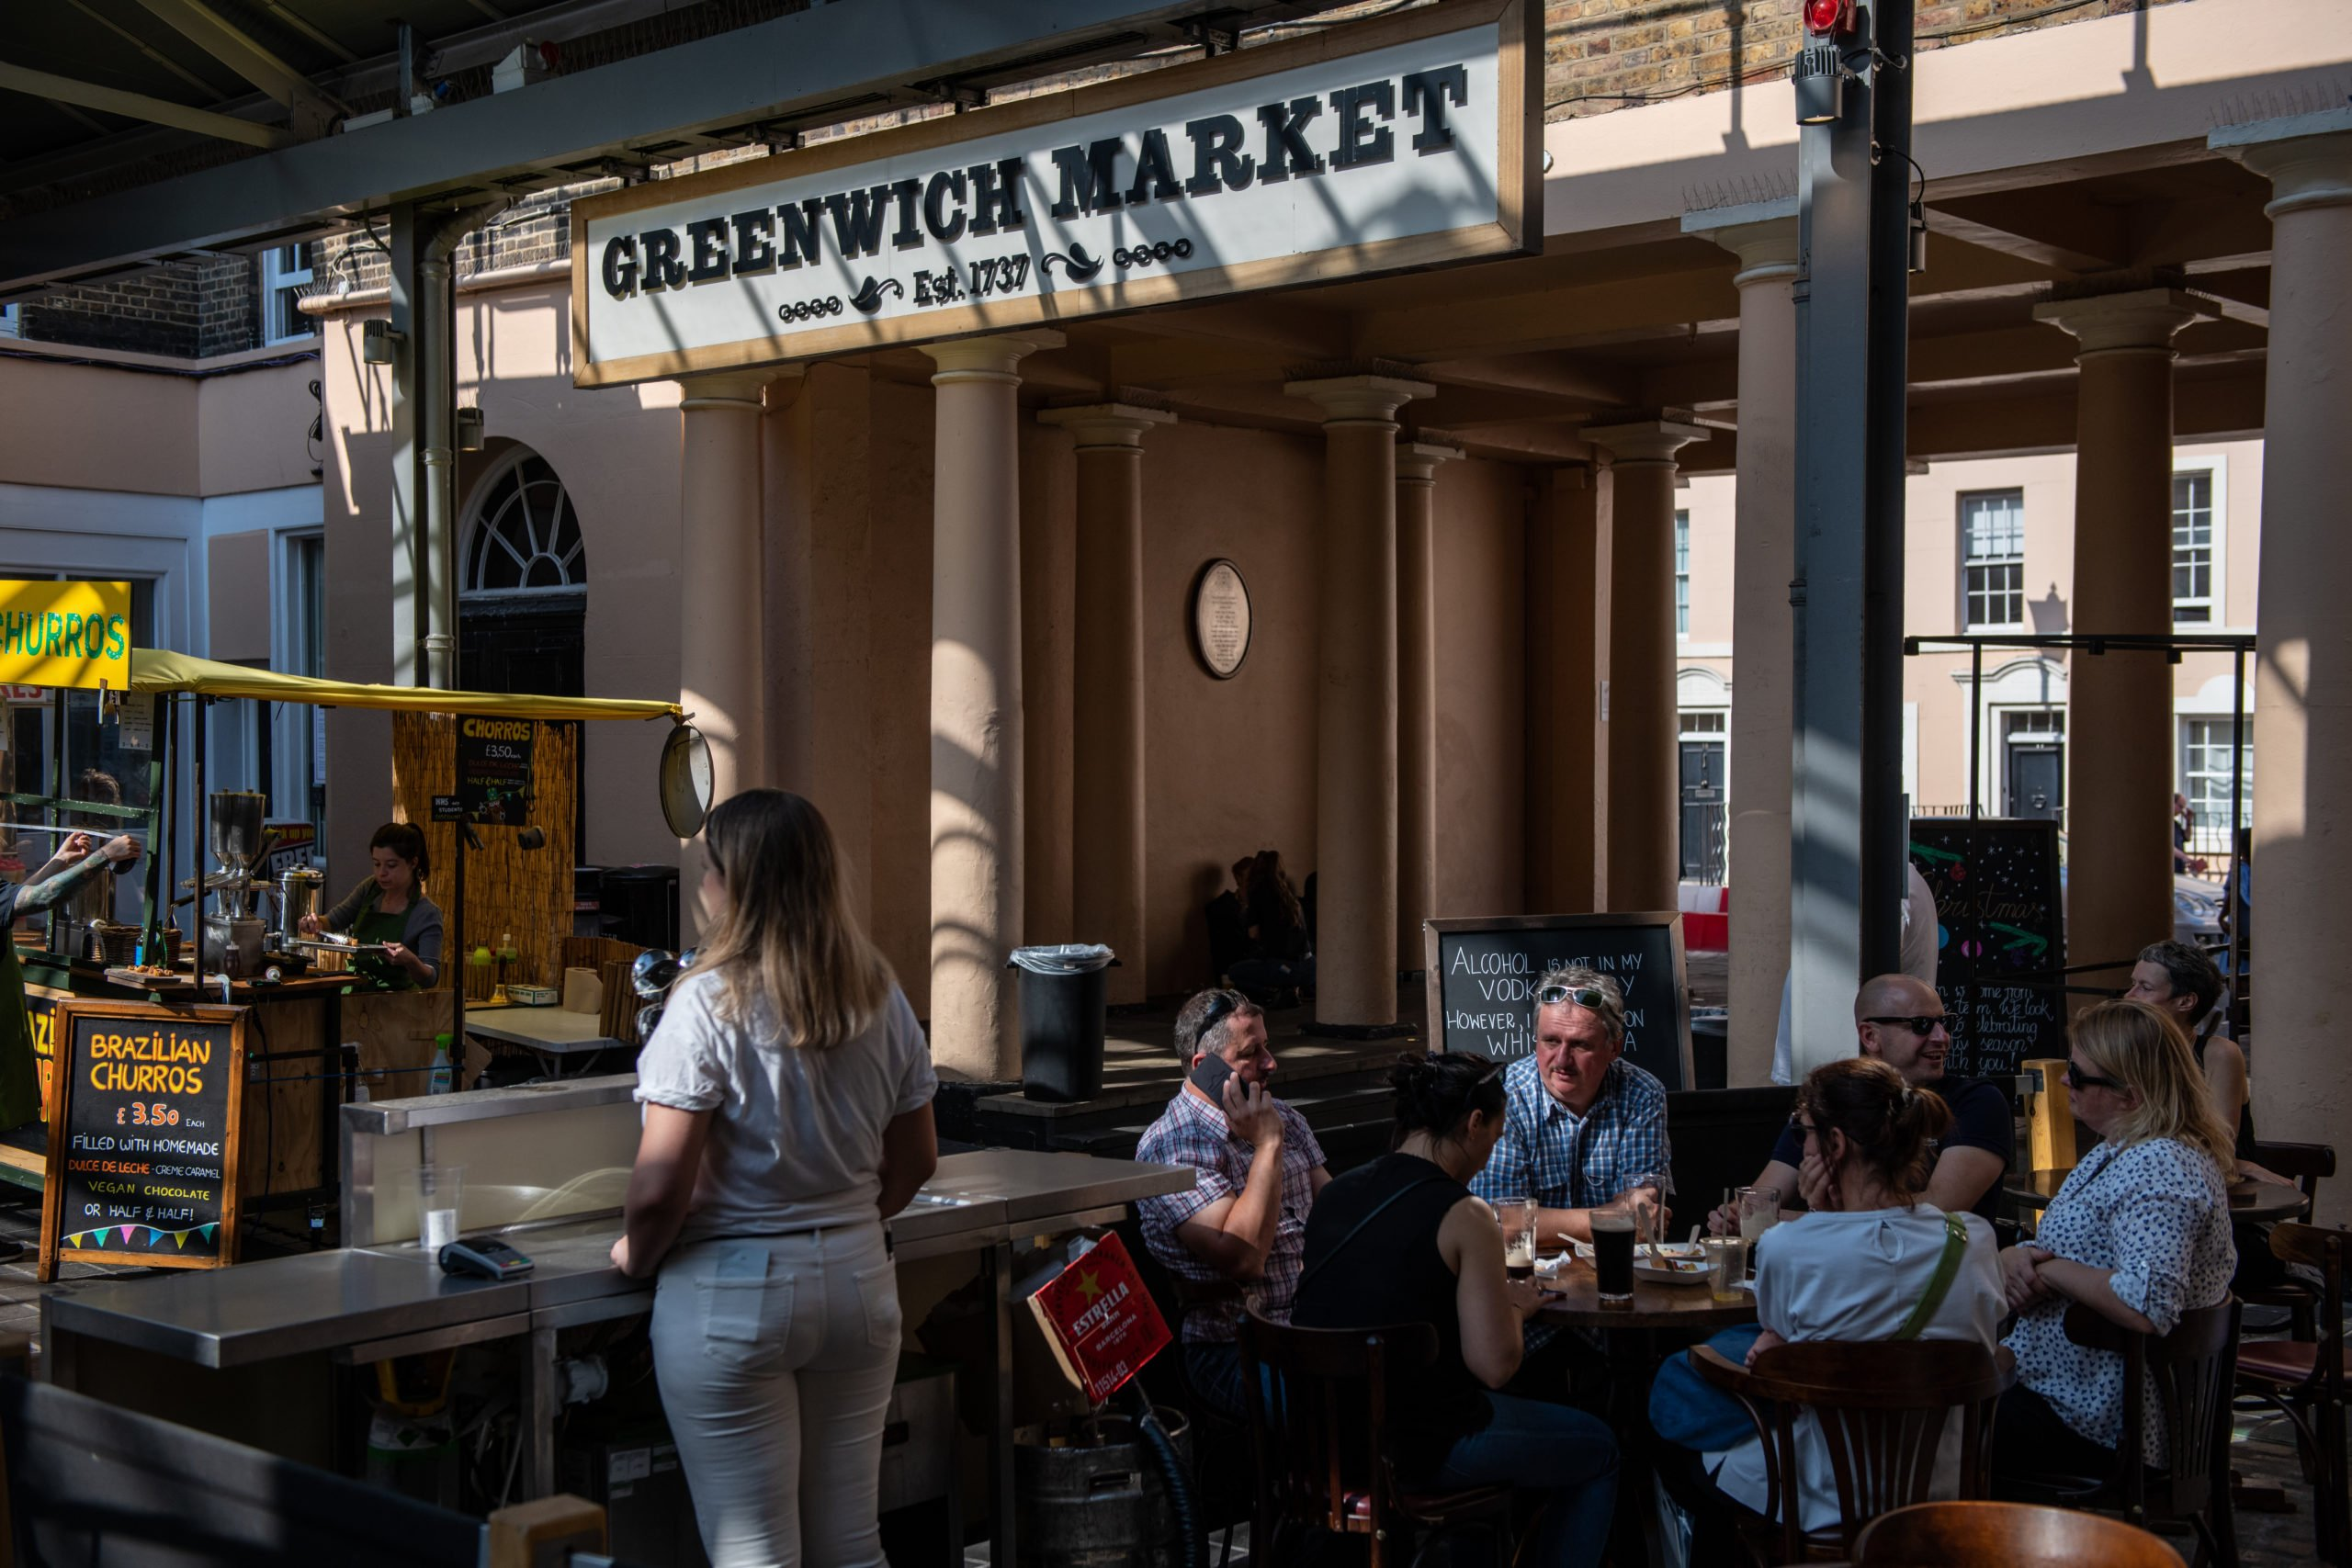 """LONDON, ENGLAND - SEPTEMBER 20: A group of six people drink alcohol at a pub in Greenwich market on September 20, 2020 in London, England. The British government reported 4,422 confirmed UK cases on Saturday, the first time the number of new daily cases has exceeded 4,000 since the virus's peak in May. The prime minister said England was """"now seeing a second wave."""" (Photo by Chris J Ratcliffe/Getty Images)"""